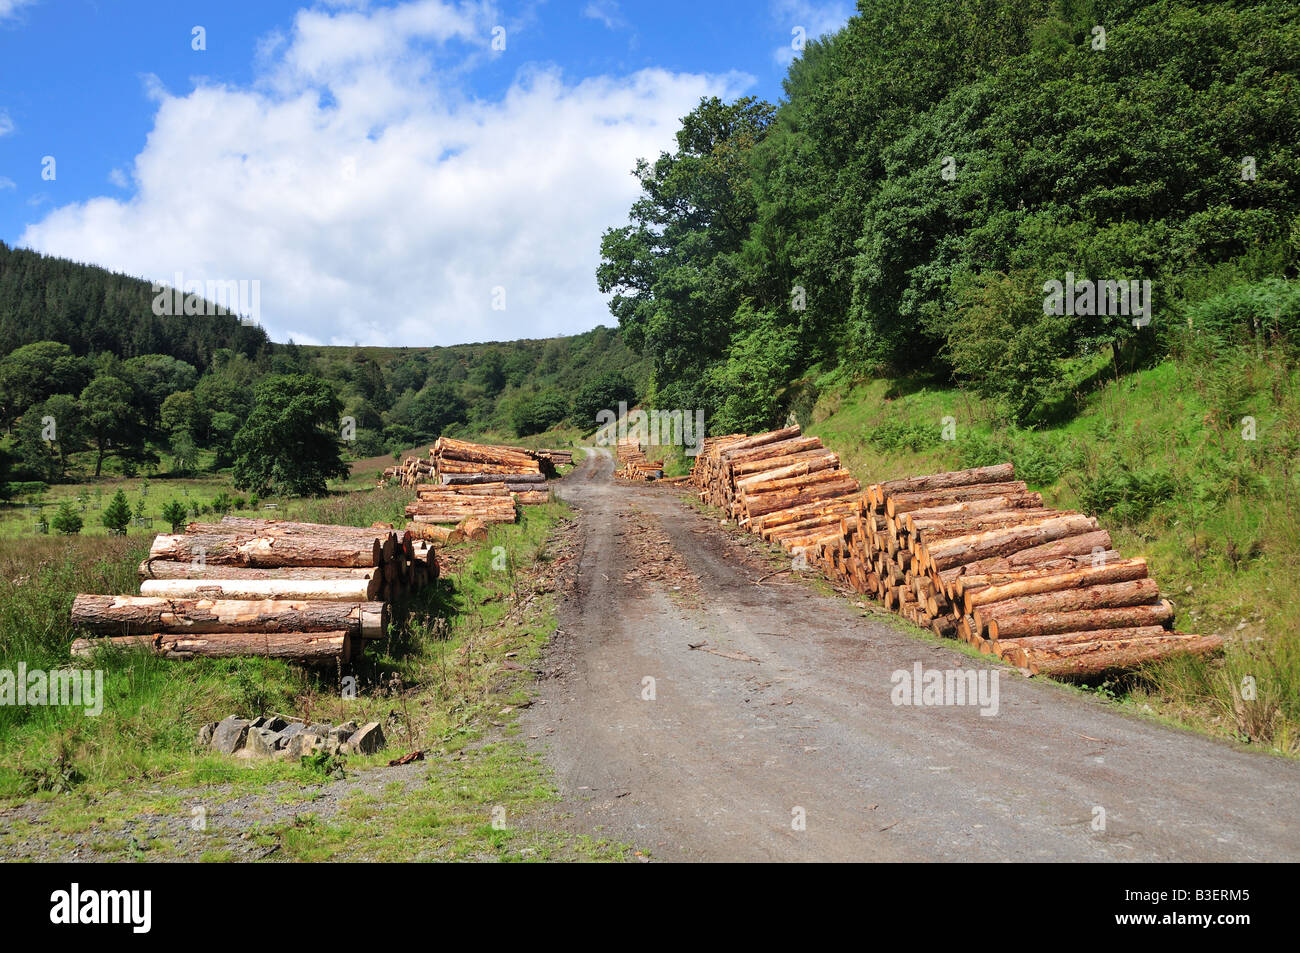 Timber ready for transportation on a forestry road Talley Llandilo Wales - Stock Image